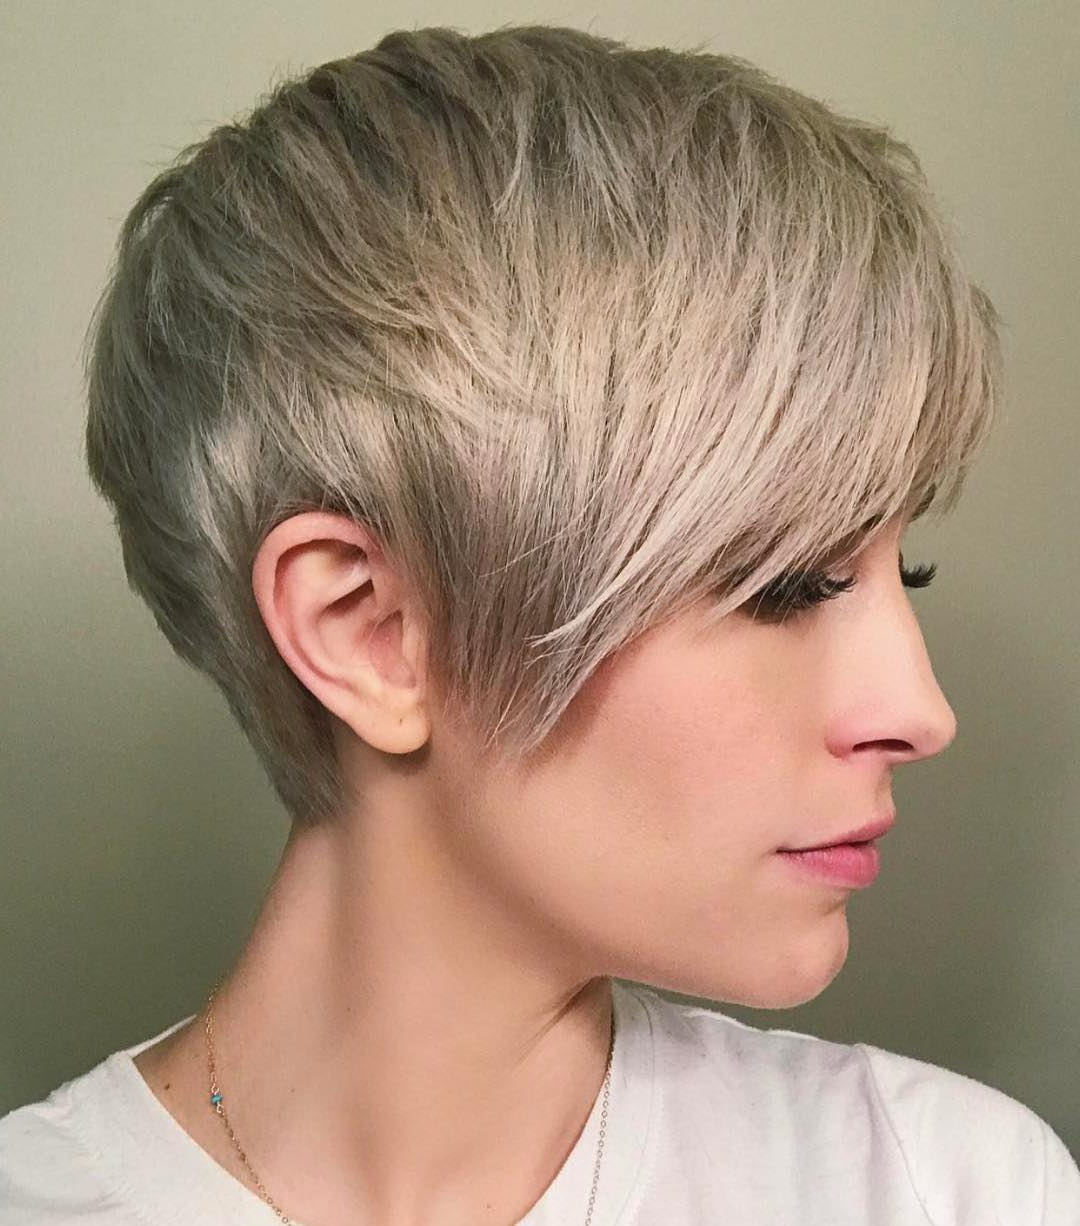 10 Best Short Straight Hairstyle Trends – Women Short Haircut Ideas 2018 With Ash Blonde Short Hairstyles (View 5 of 25)